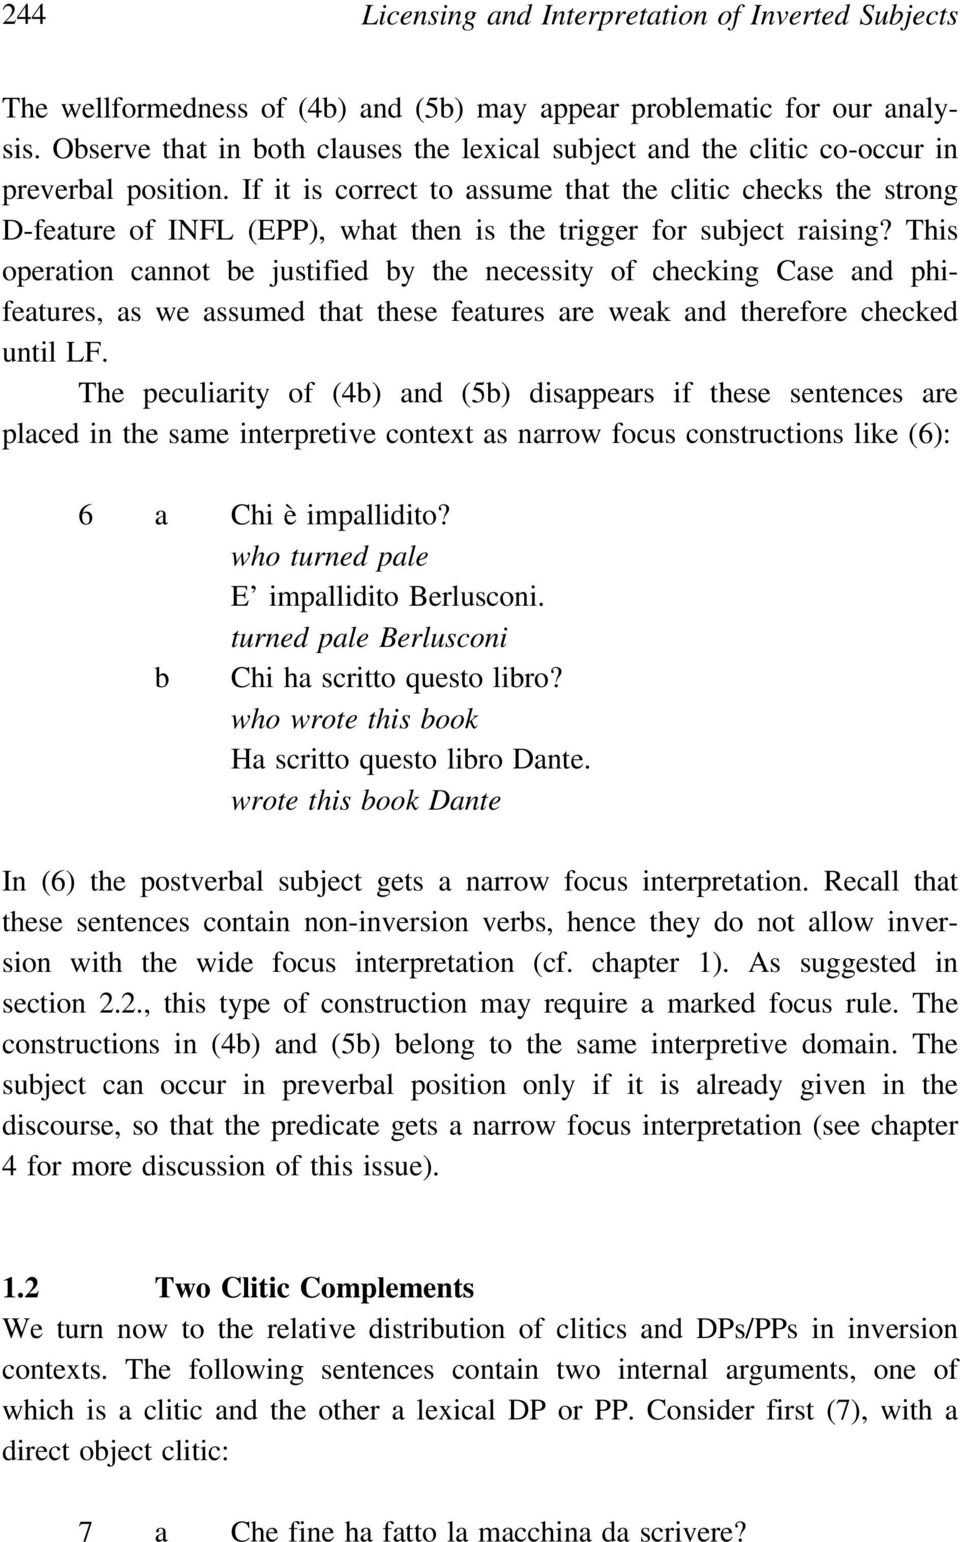 If it is correct to assume that the clitic checks the strong D-feature of INFL (EPP), what then is the trigger for subject raising?